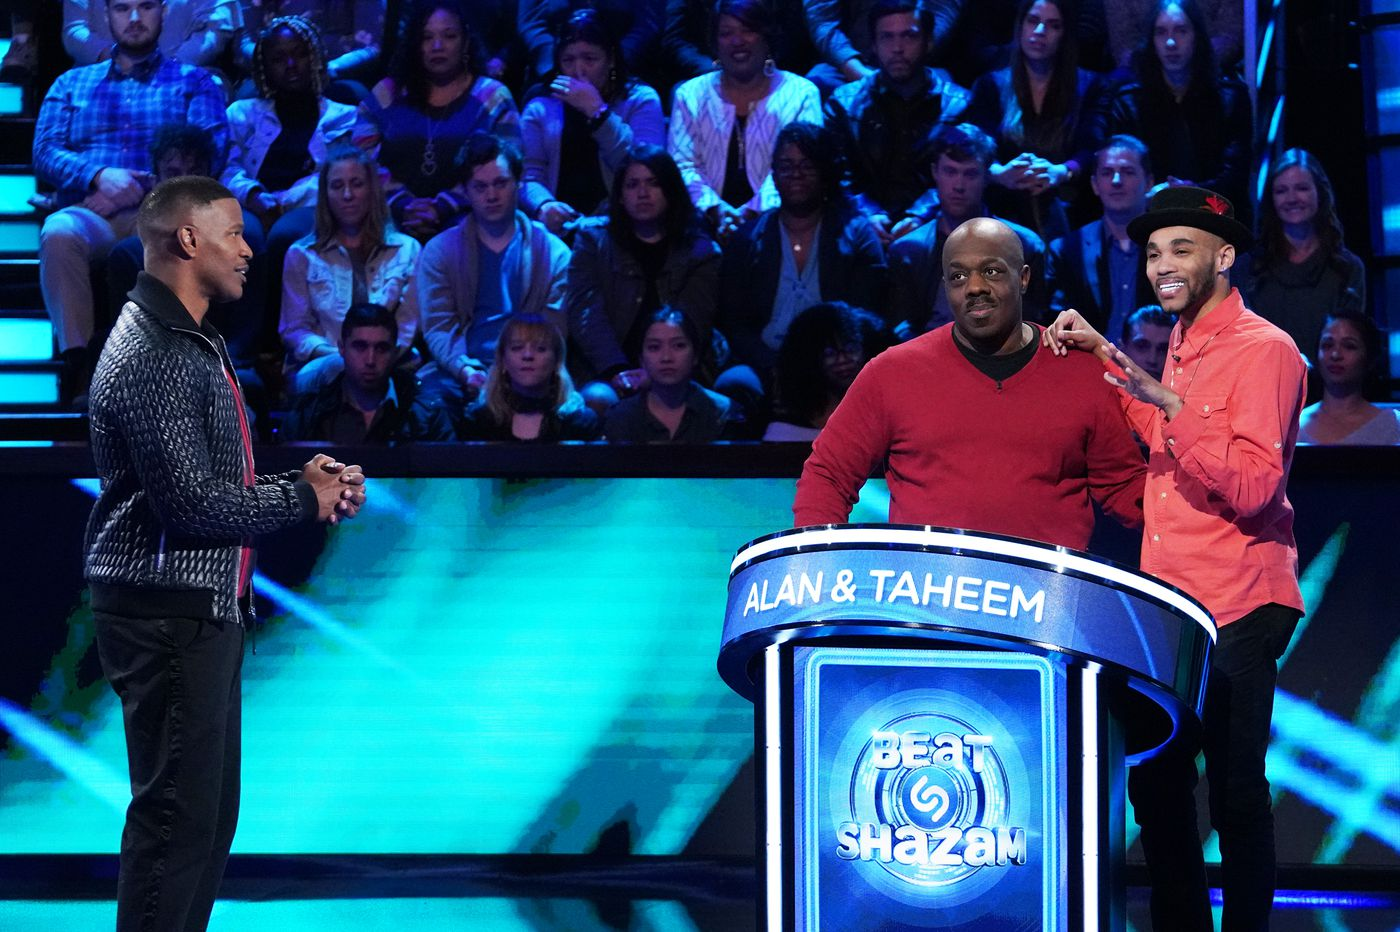 'Beat Shazam' episode featuring Jersey Shore musician ends on sad note